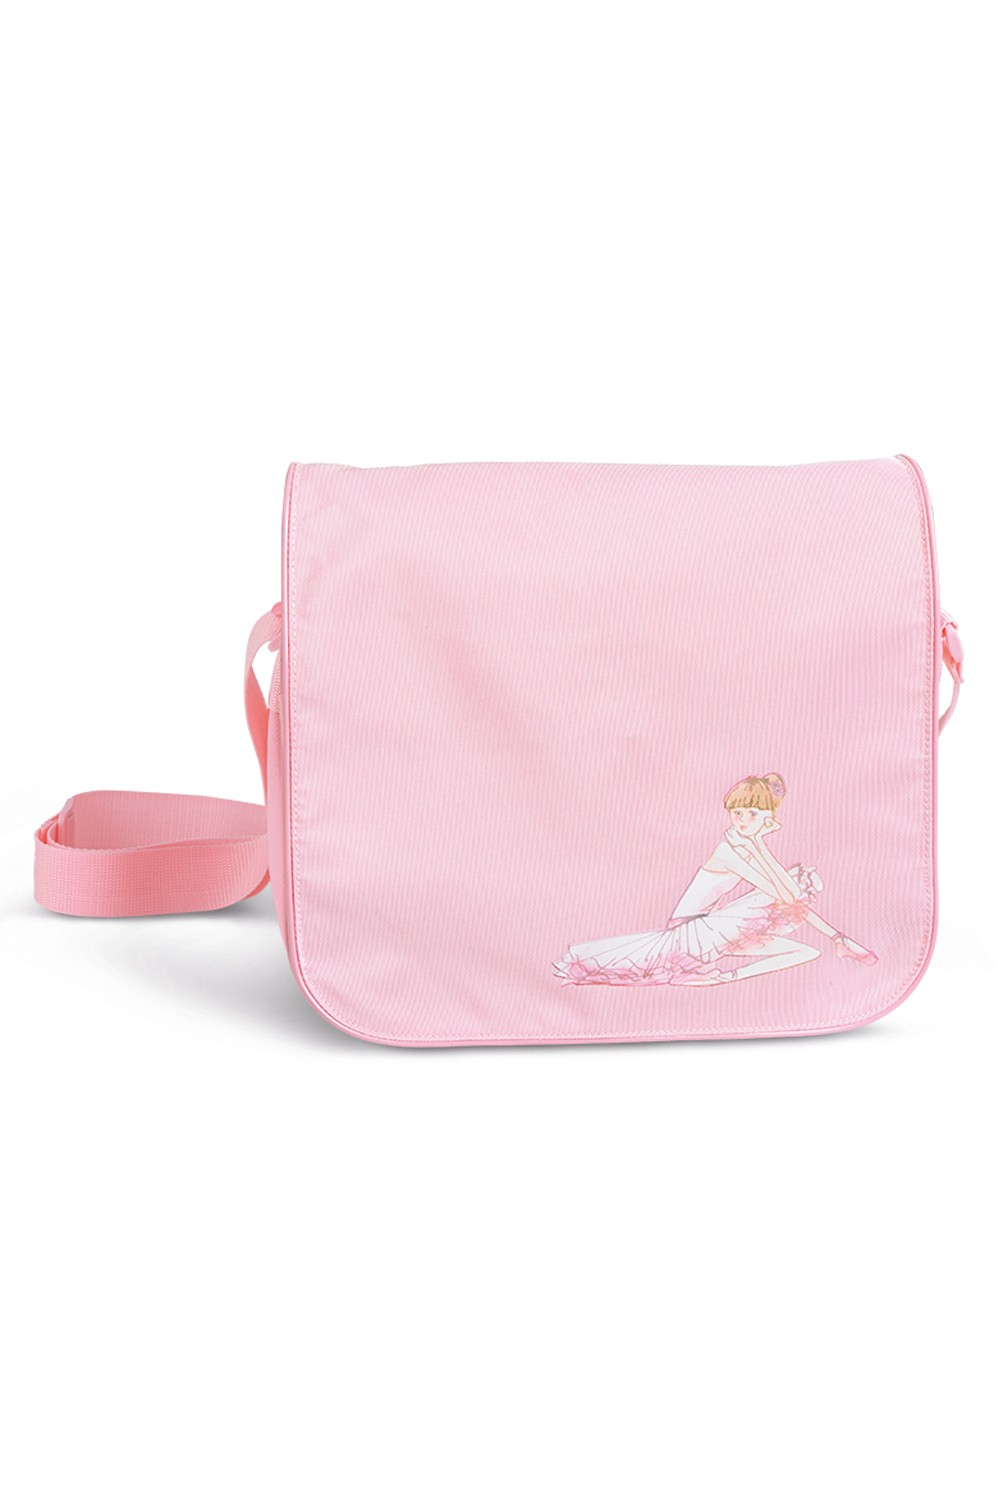 Girls' Shoulder Bag Dance Bags